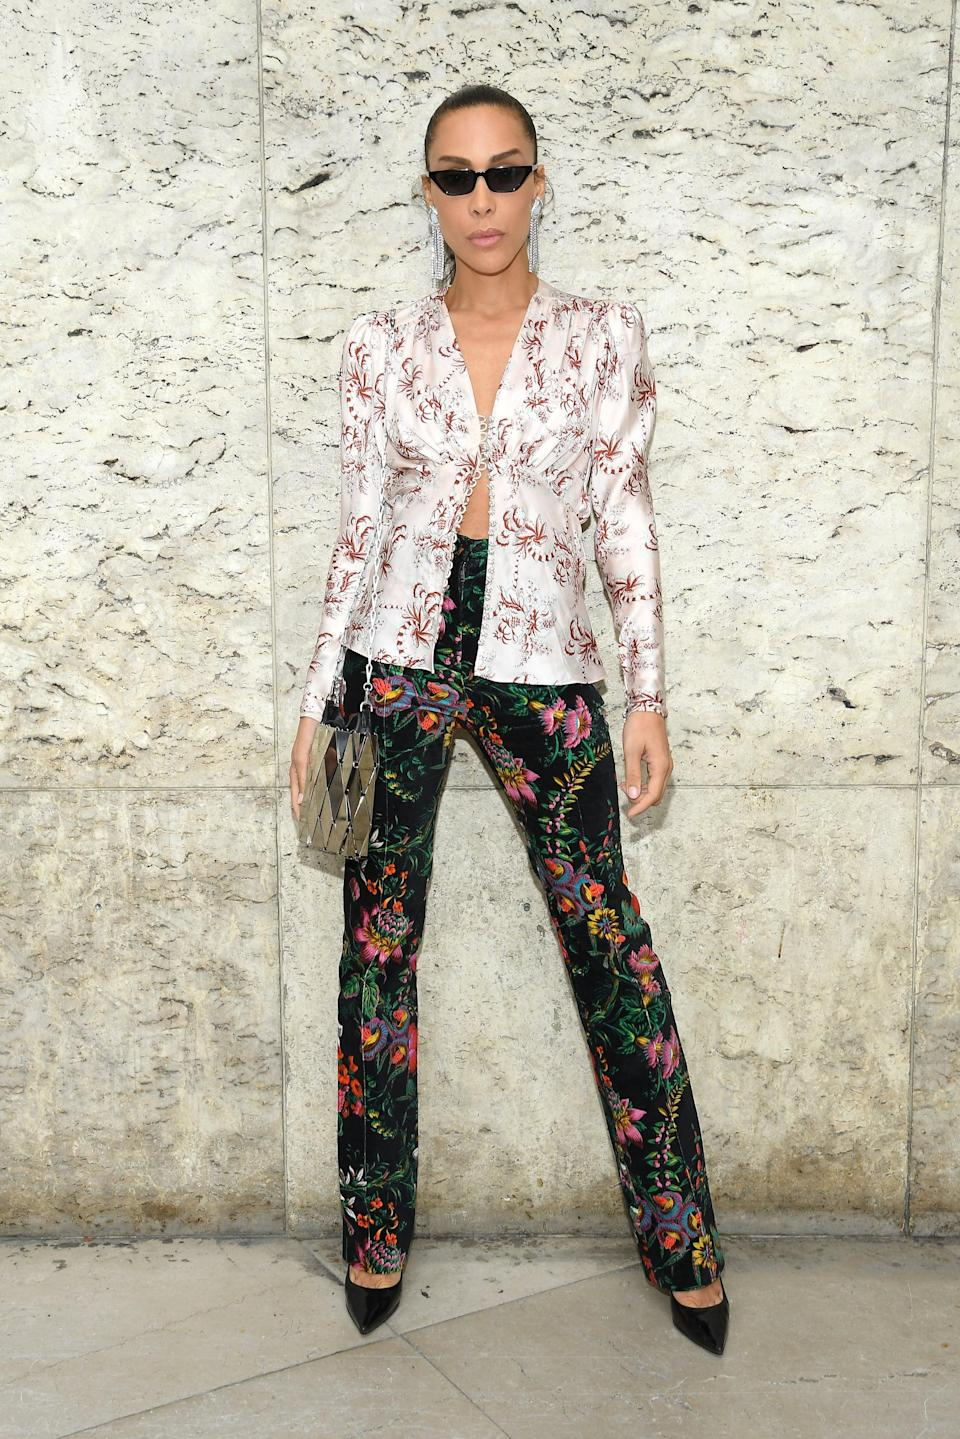 <p>In 2013, Ines was the first openly transgender model to be featured in <strong>Playboy</strong>. The French model is a major LGBTQ+ activist and often speaks out about it on her Instagram.</p>